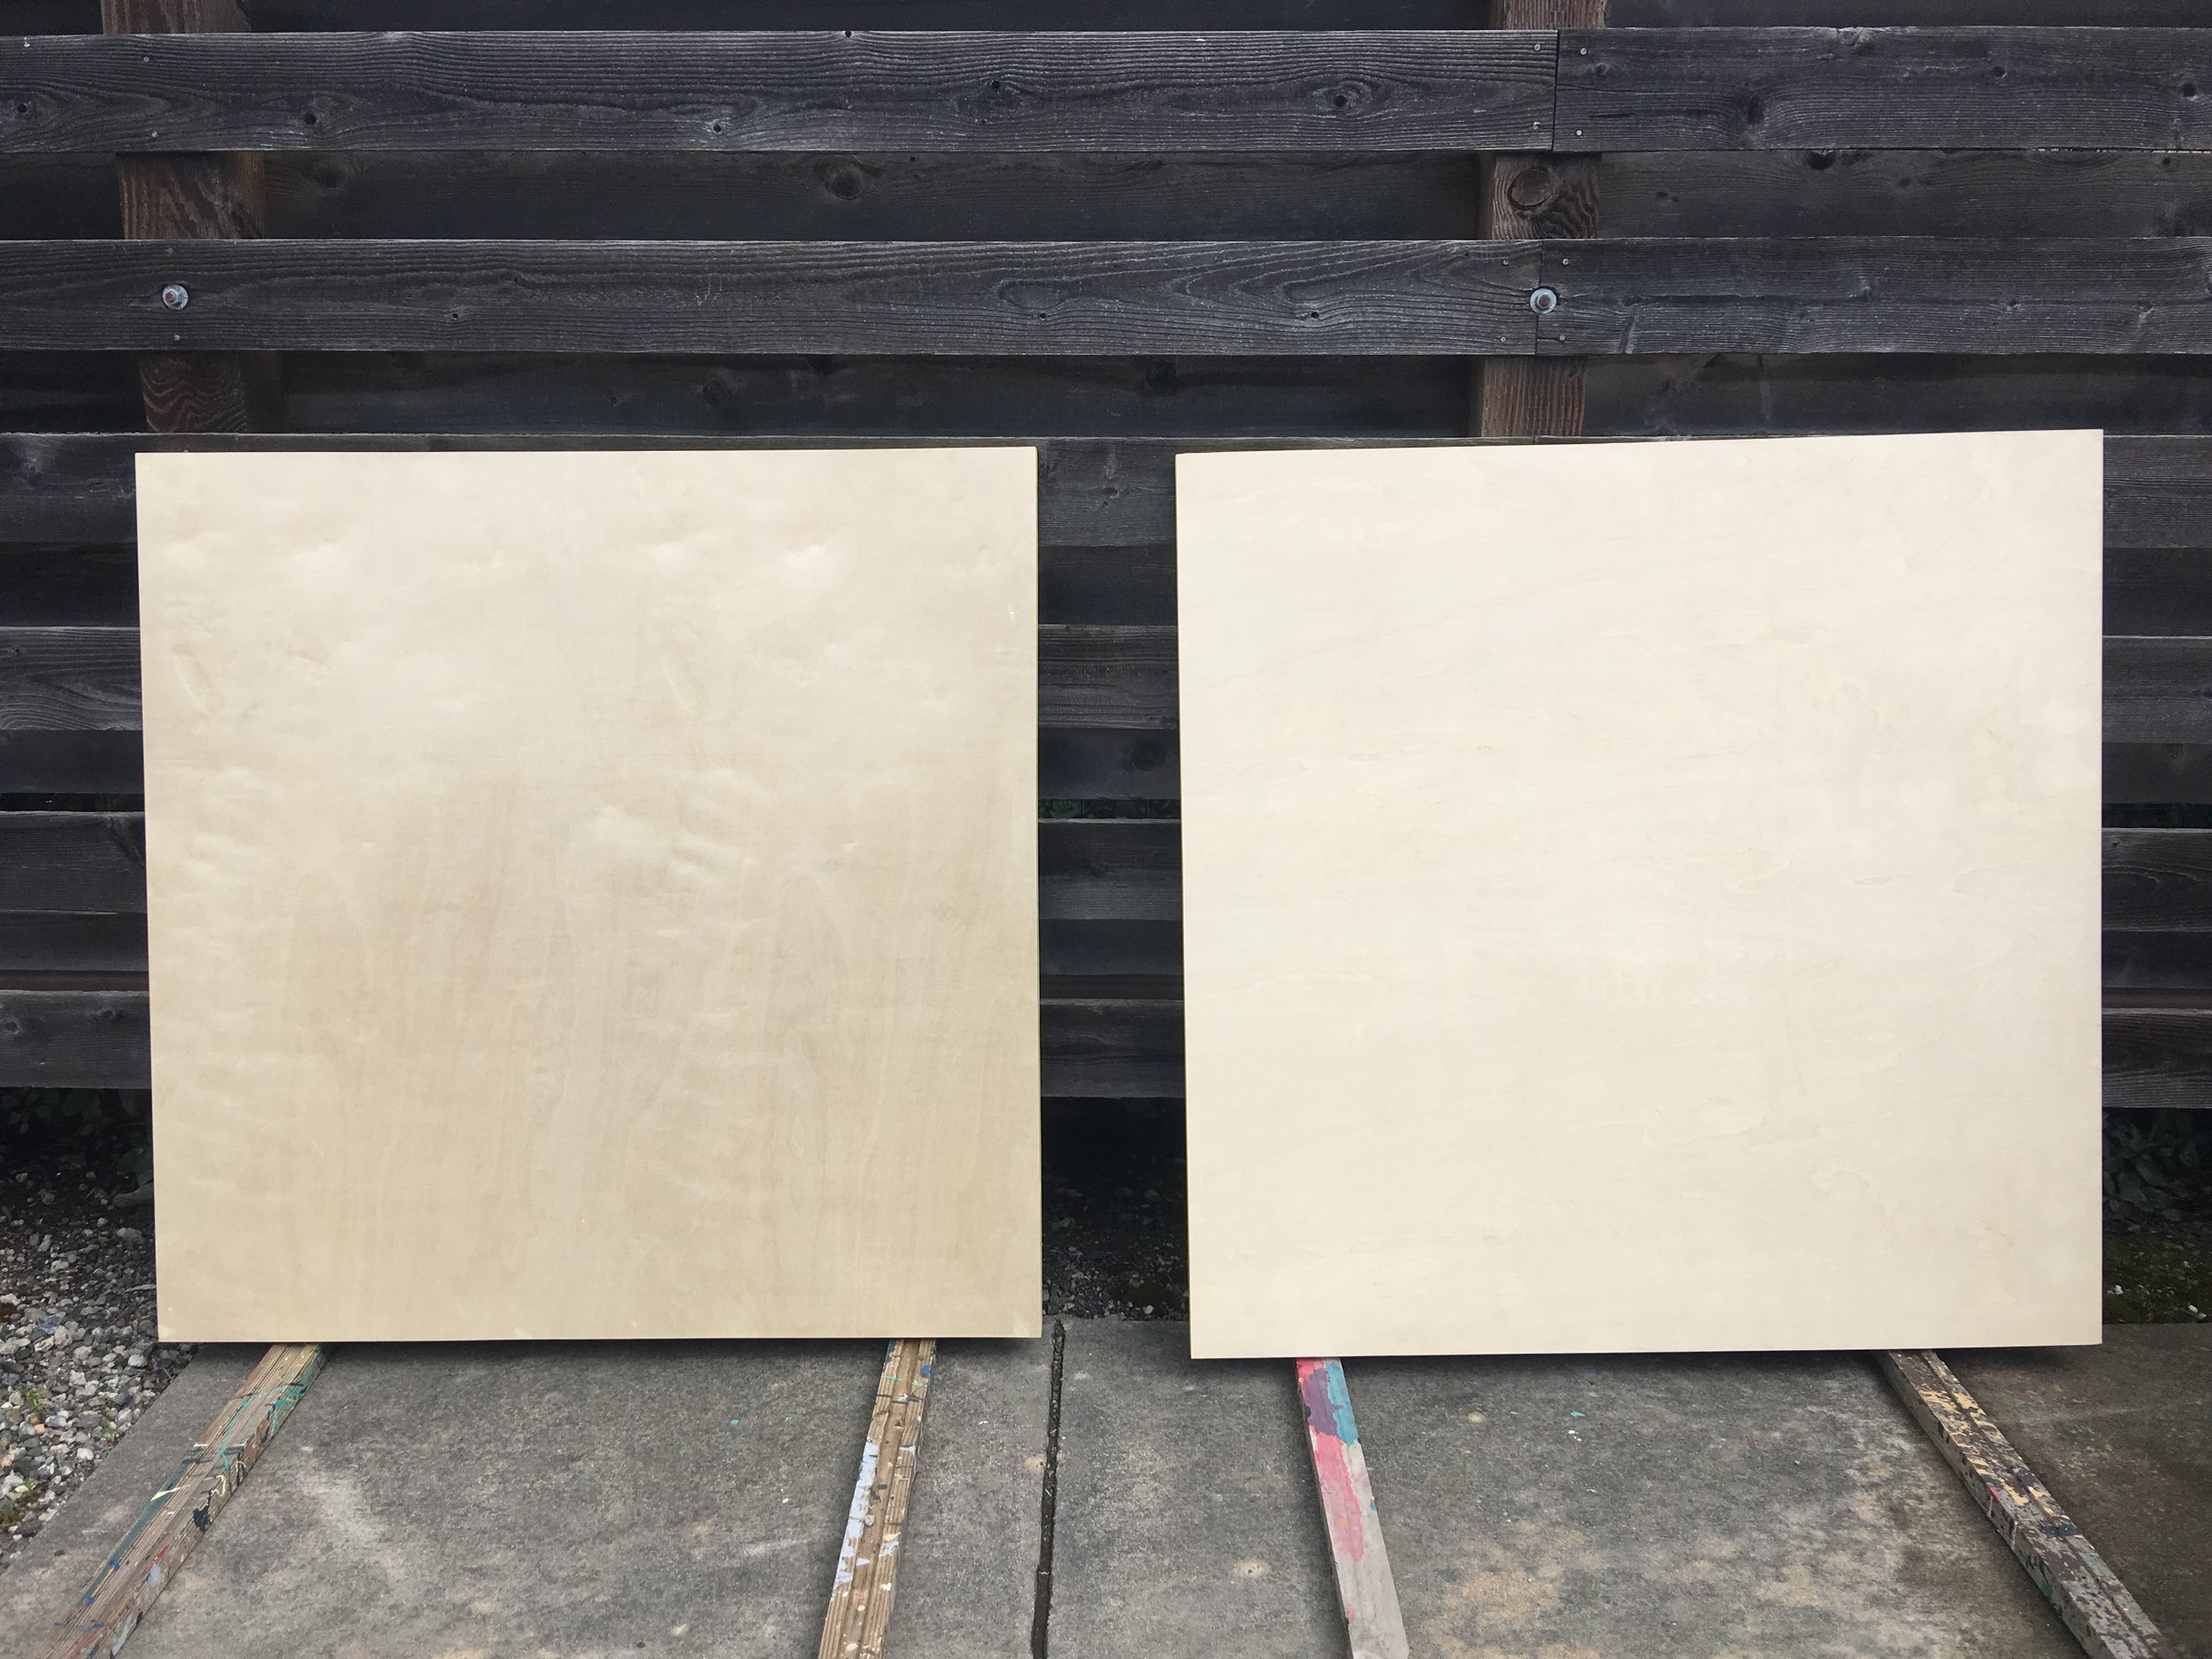 48 x 48 x 1.5 inch hard wood panels (BEFORE)